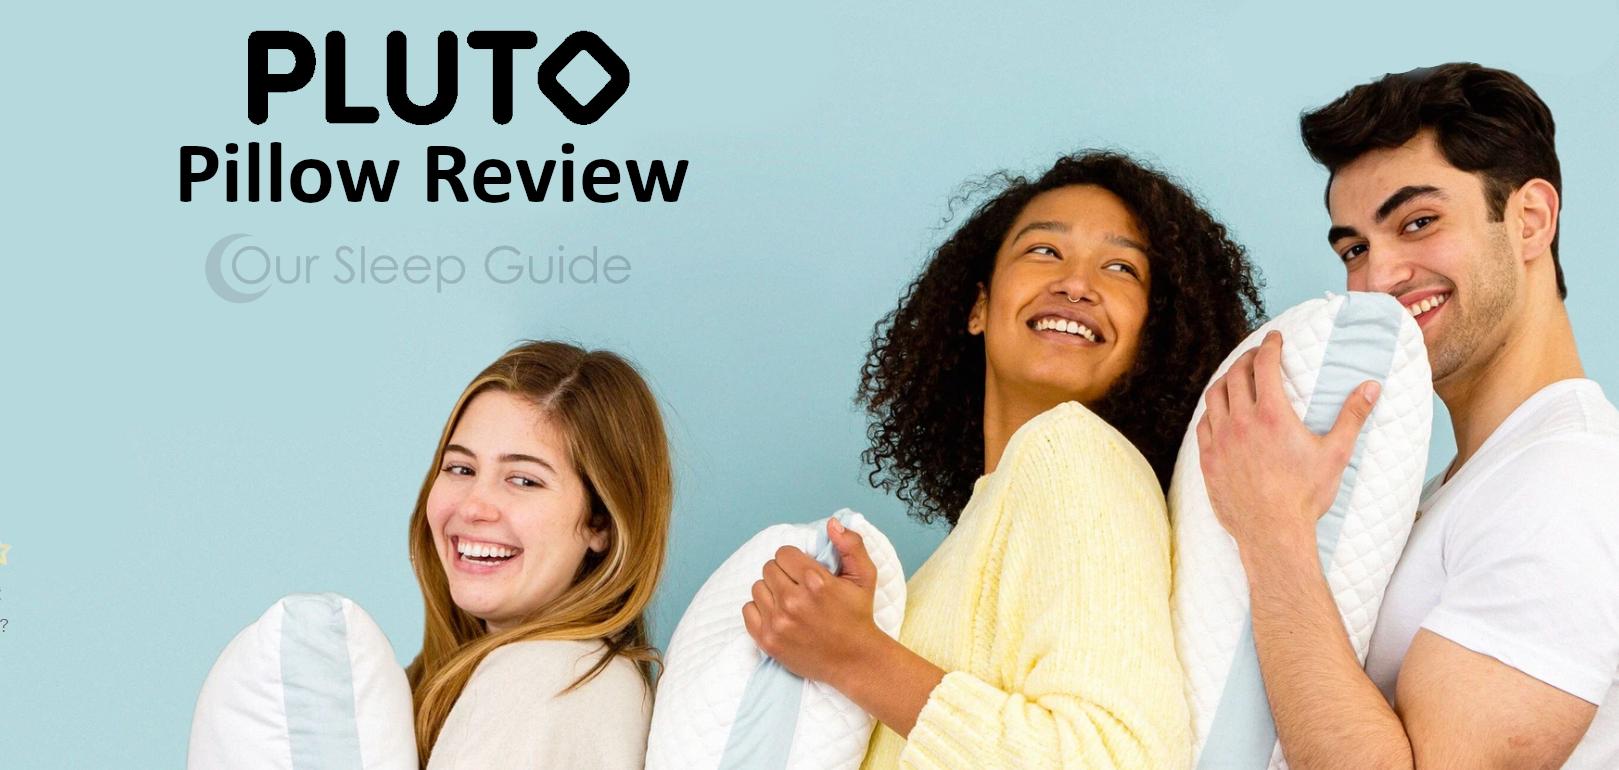 pluto pillow review our sleep guide